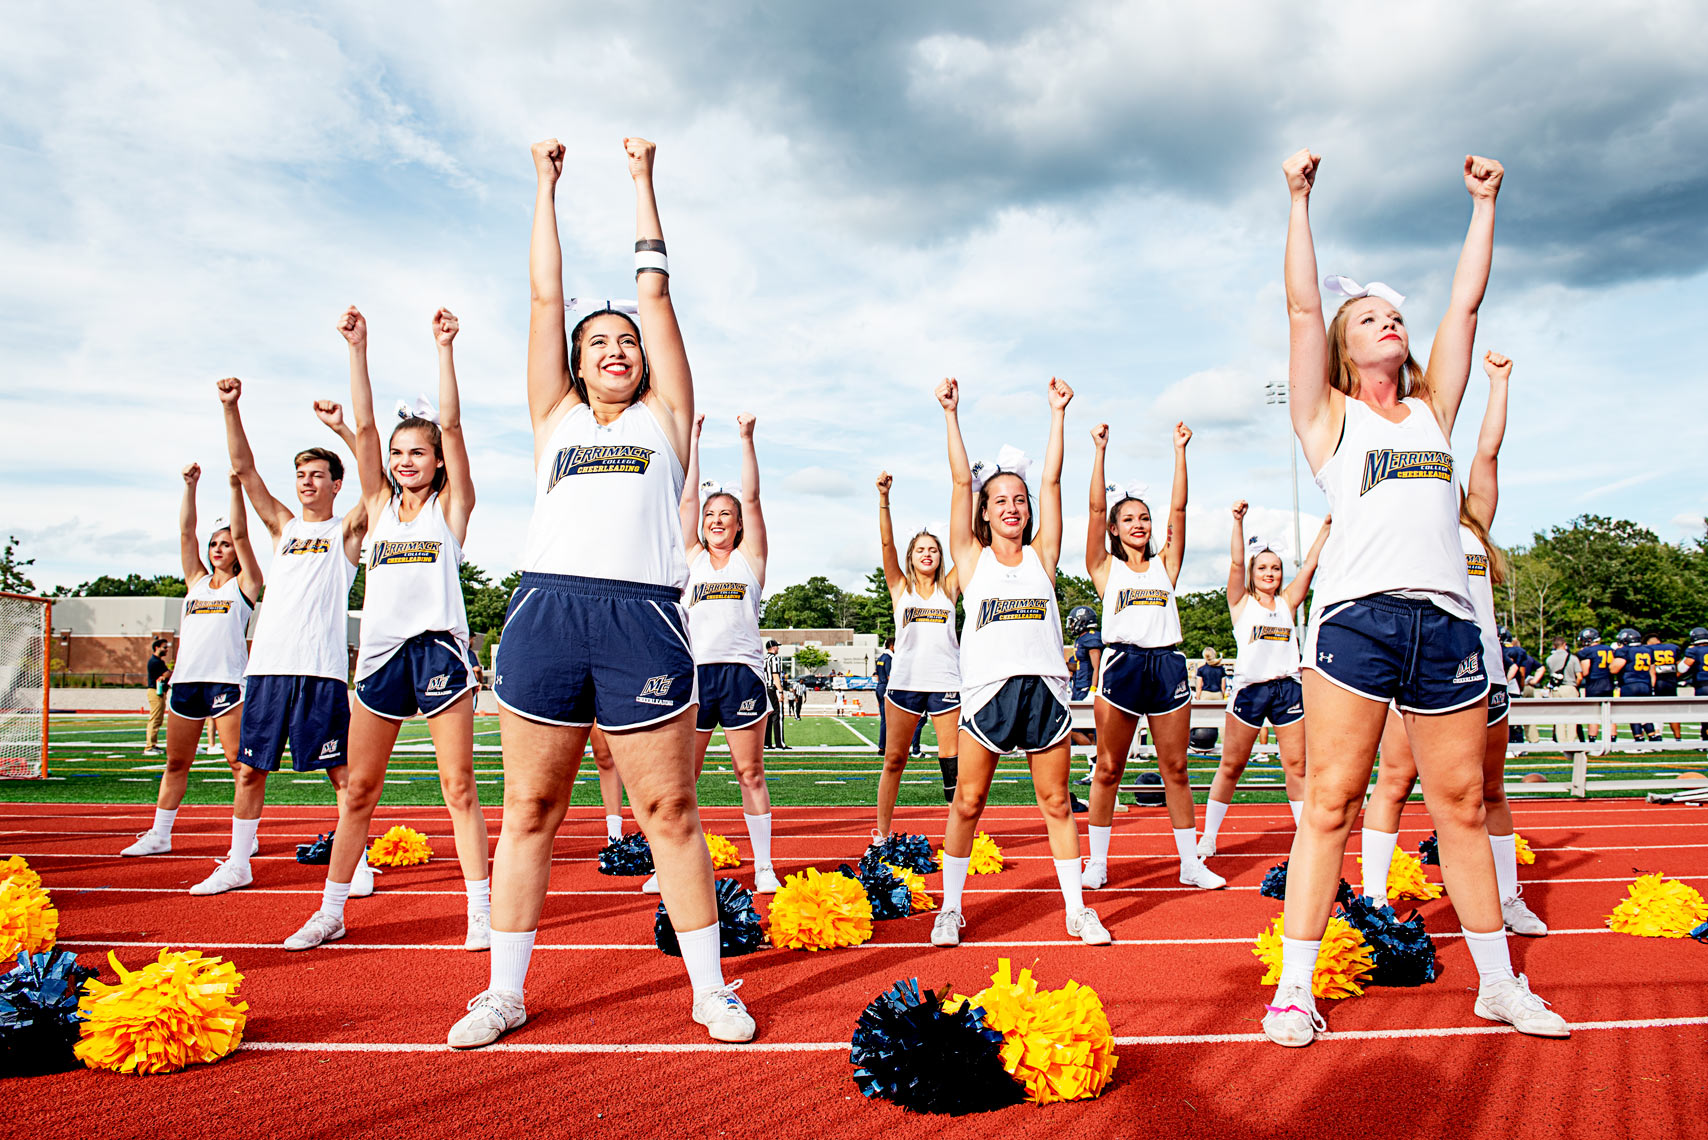 organized college cheerleading at Merrimack College